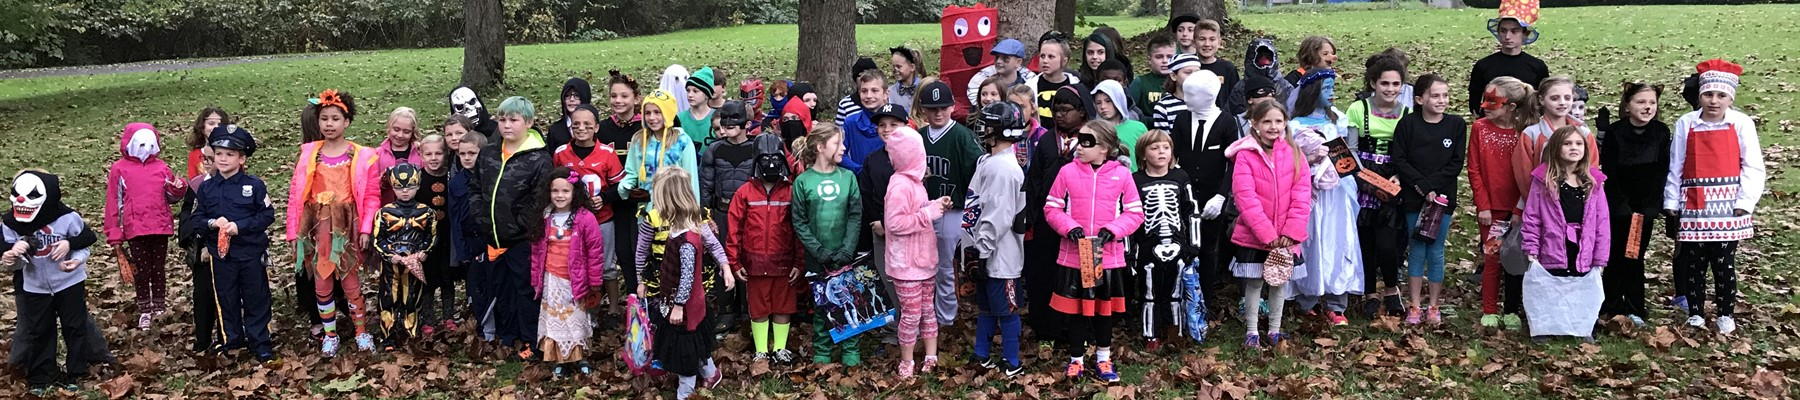 ACS Elementary Cross Country Costume Fun Run